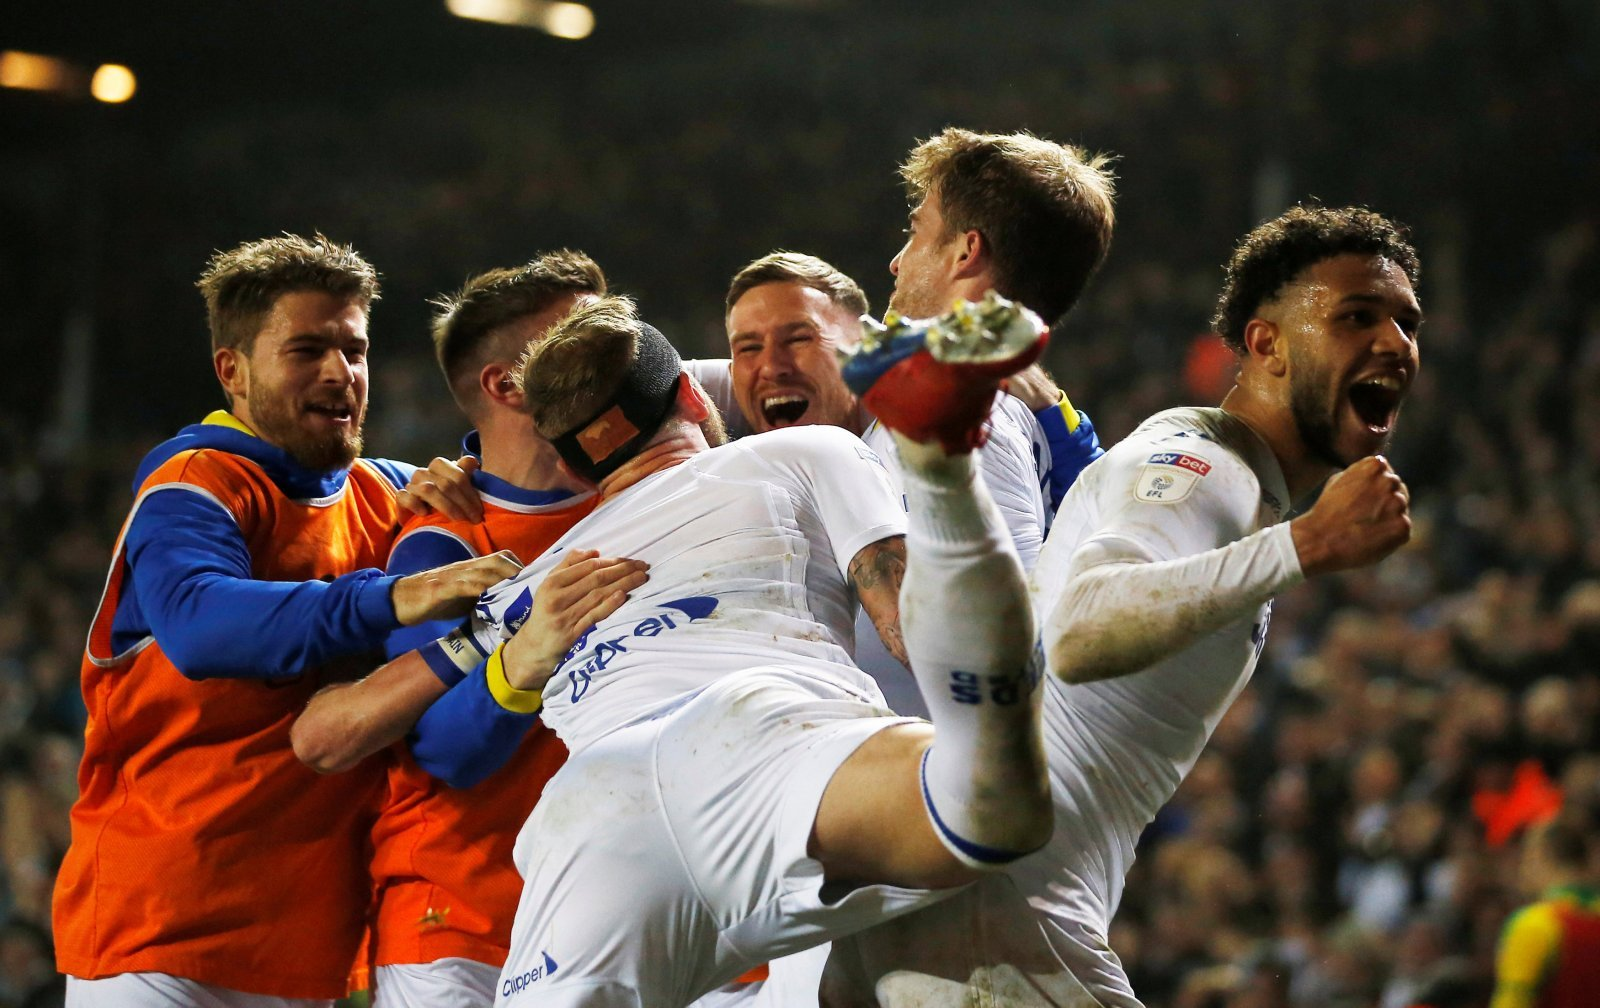 Leeds United's sizzling rhythm returns just at the right time